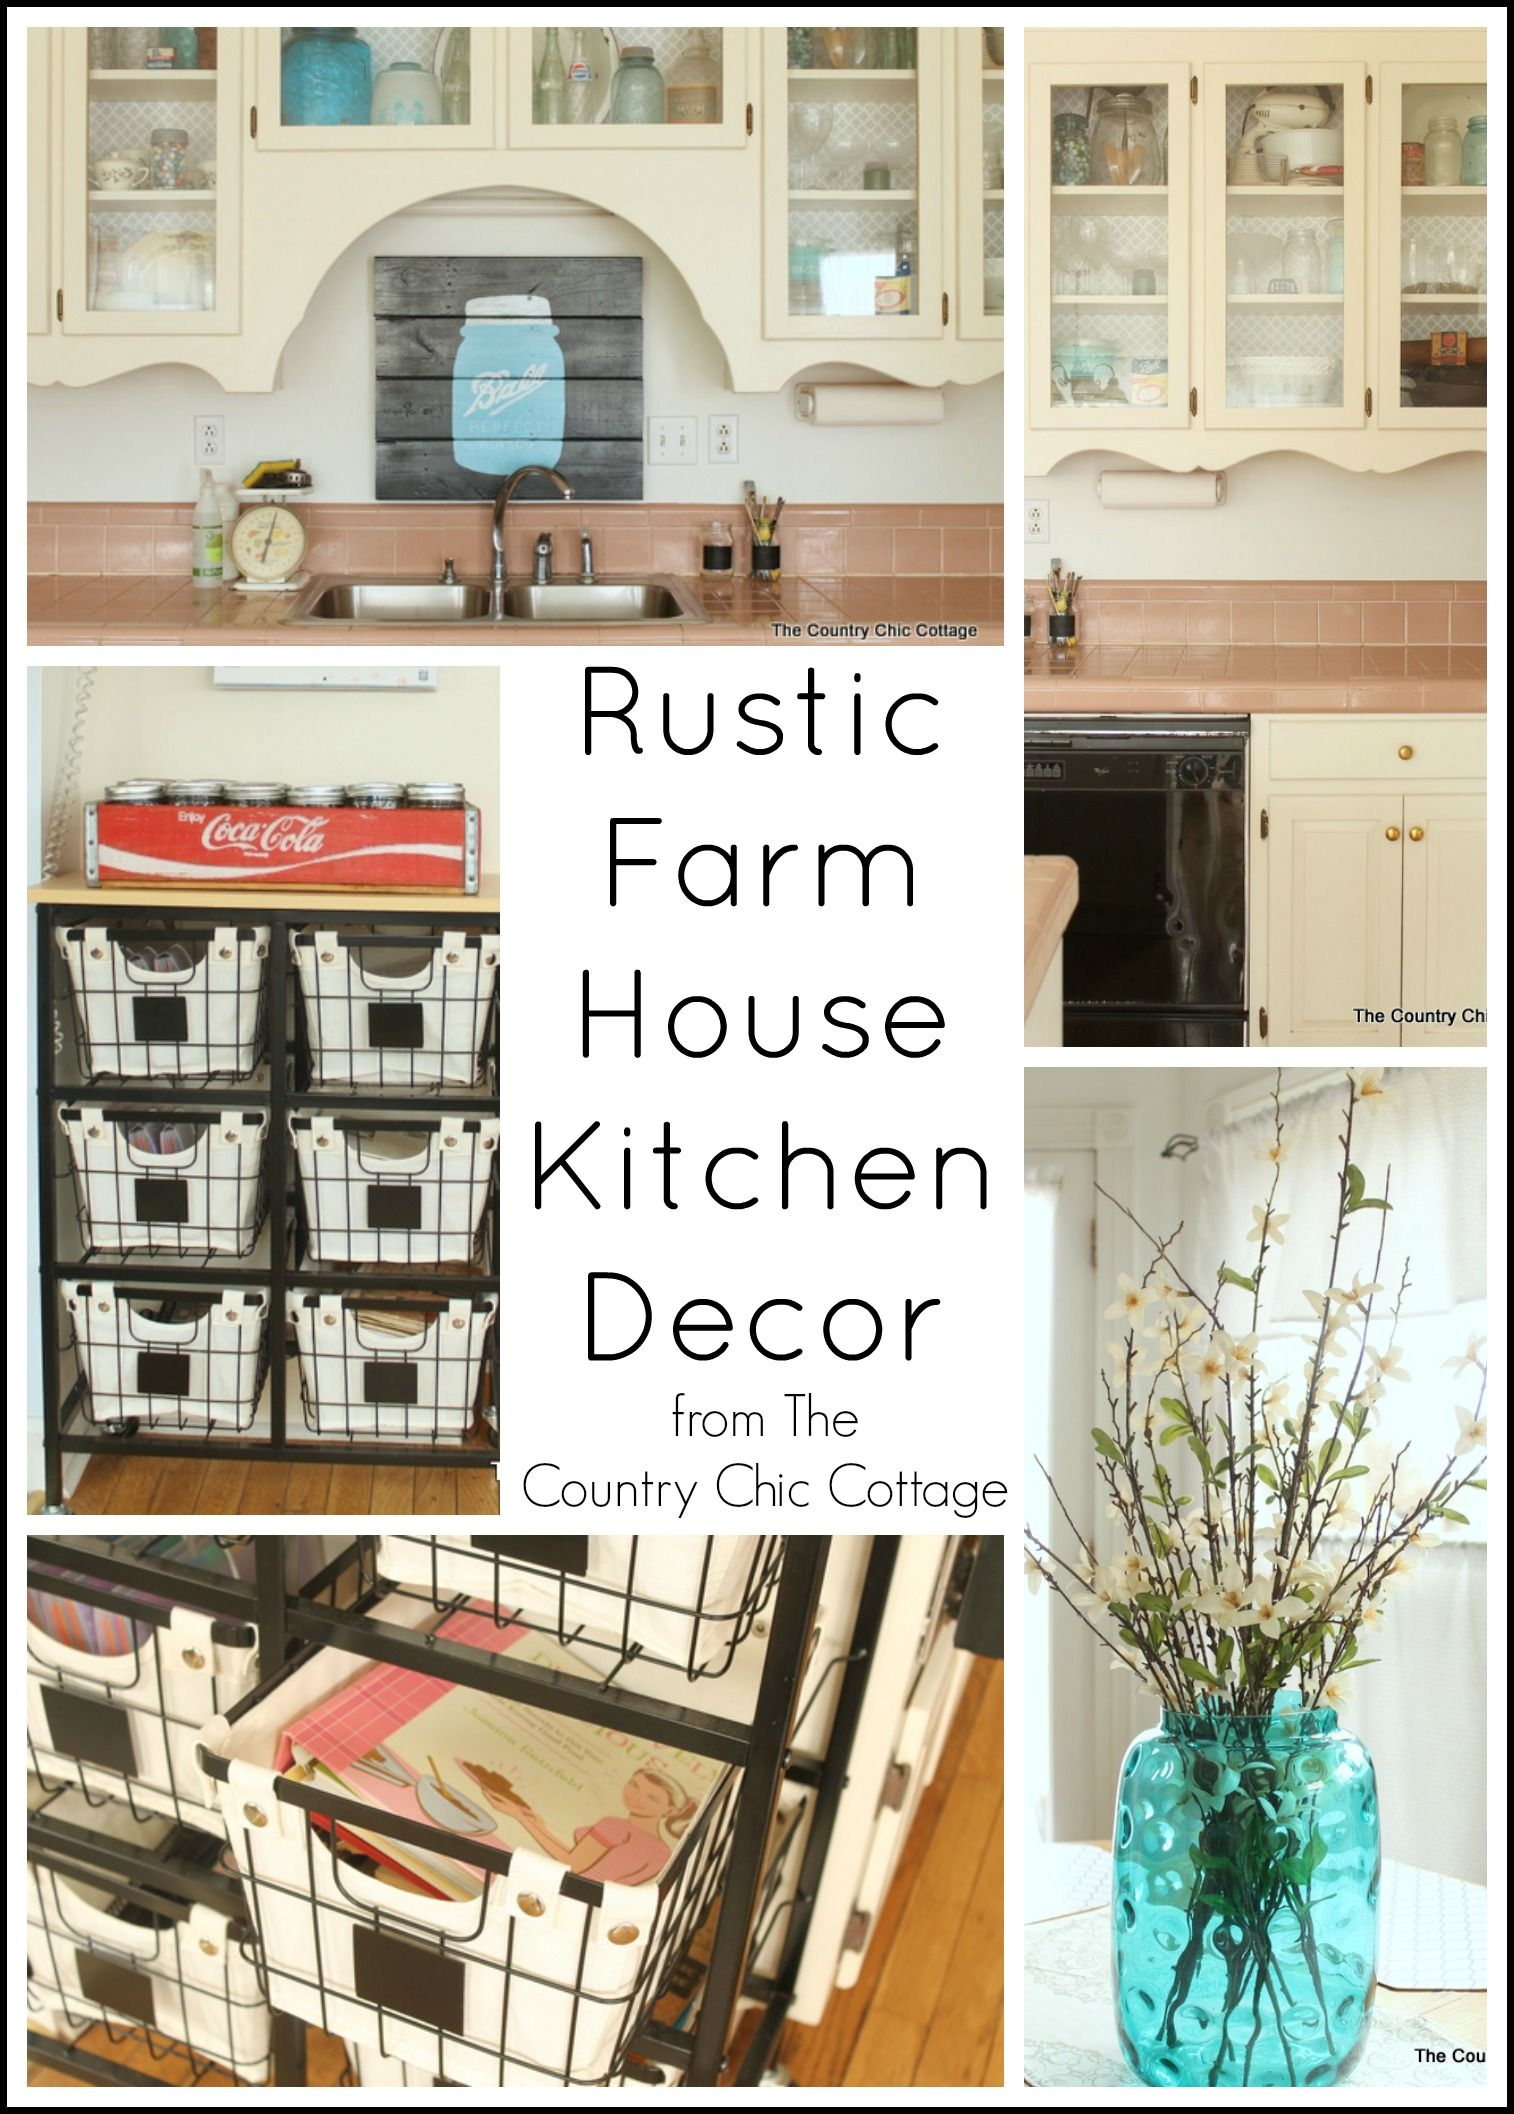 Rustic Kitchen Decor on Pinterest Wildlife Decor Bear